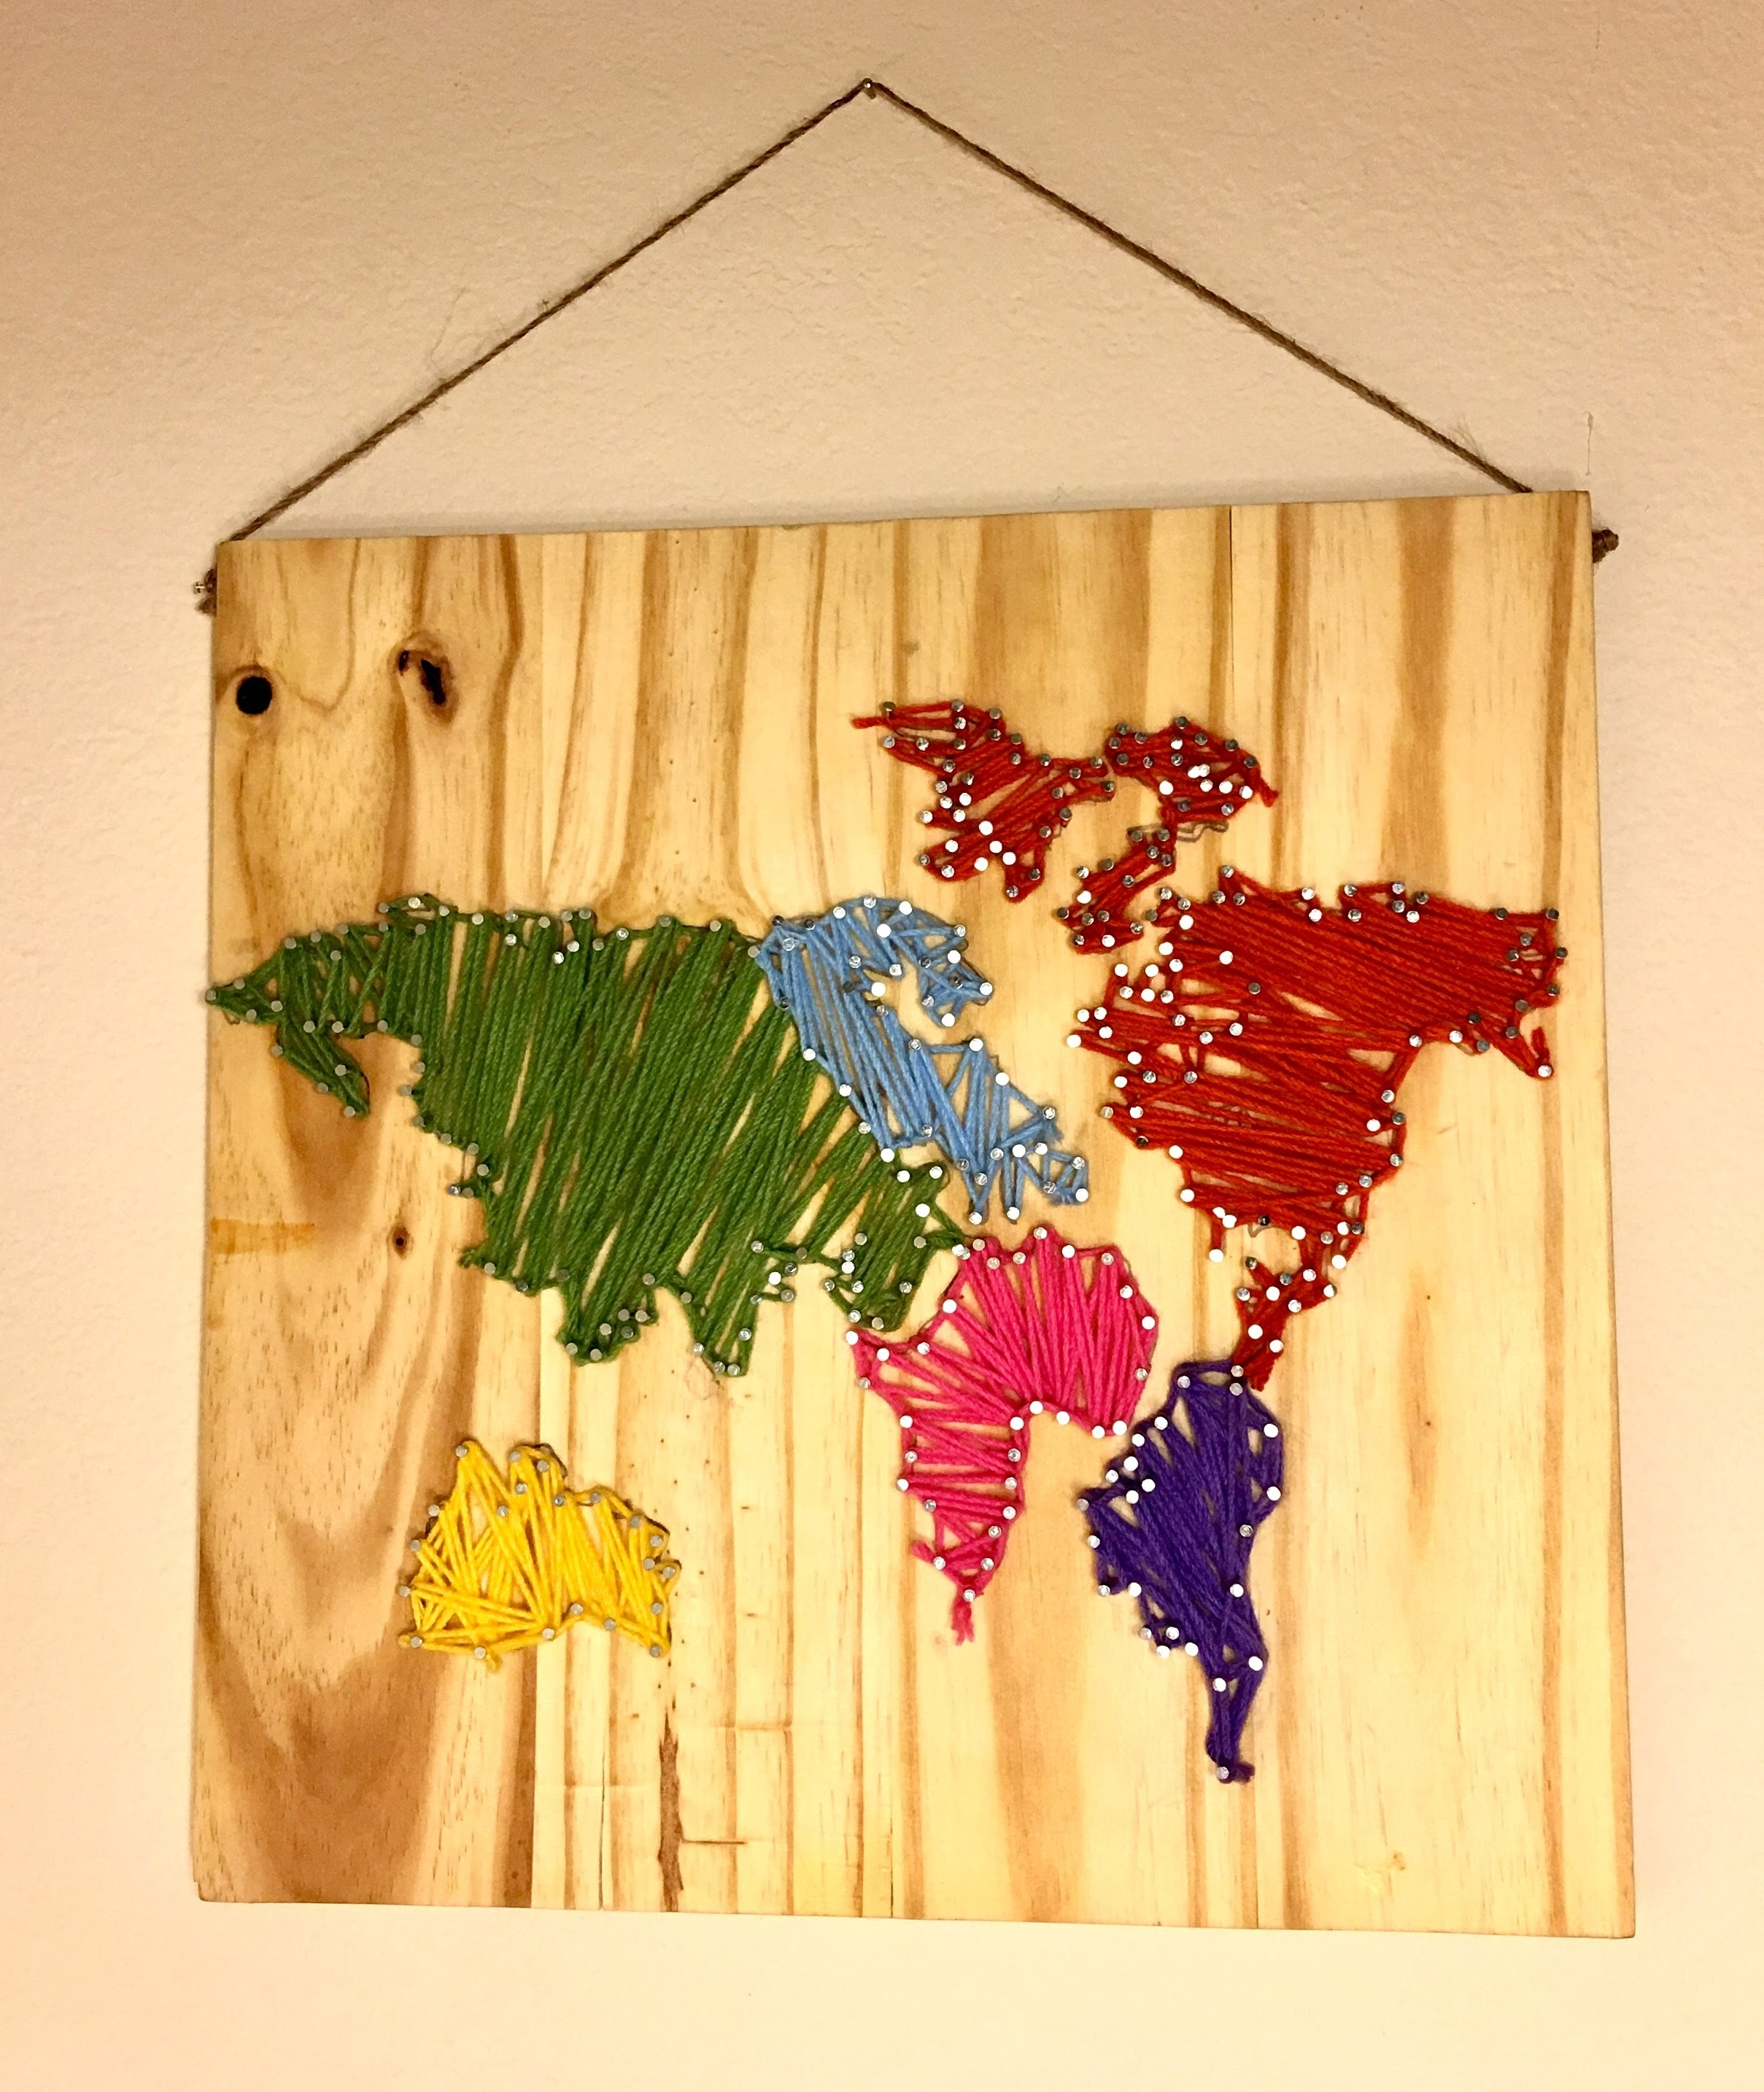 [%Diy World Map Wall Nail String Art [Timelapse] – Youtube Throughout Latest String Map Wall Art|String Map Wall Art Within Most Recent Diy World Map Wall Nail String Art [Timelapse] – Youtube|Current String Map Wall Art Inside Diy World Map Wall Nail String Art [Timelapse] – Youtube|Famous Diy World Map Wall Nail String Art [Timelapse] – Youtube Intended For String Map Wall Art%] (View 1 of 15)